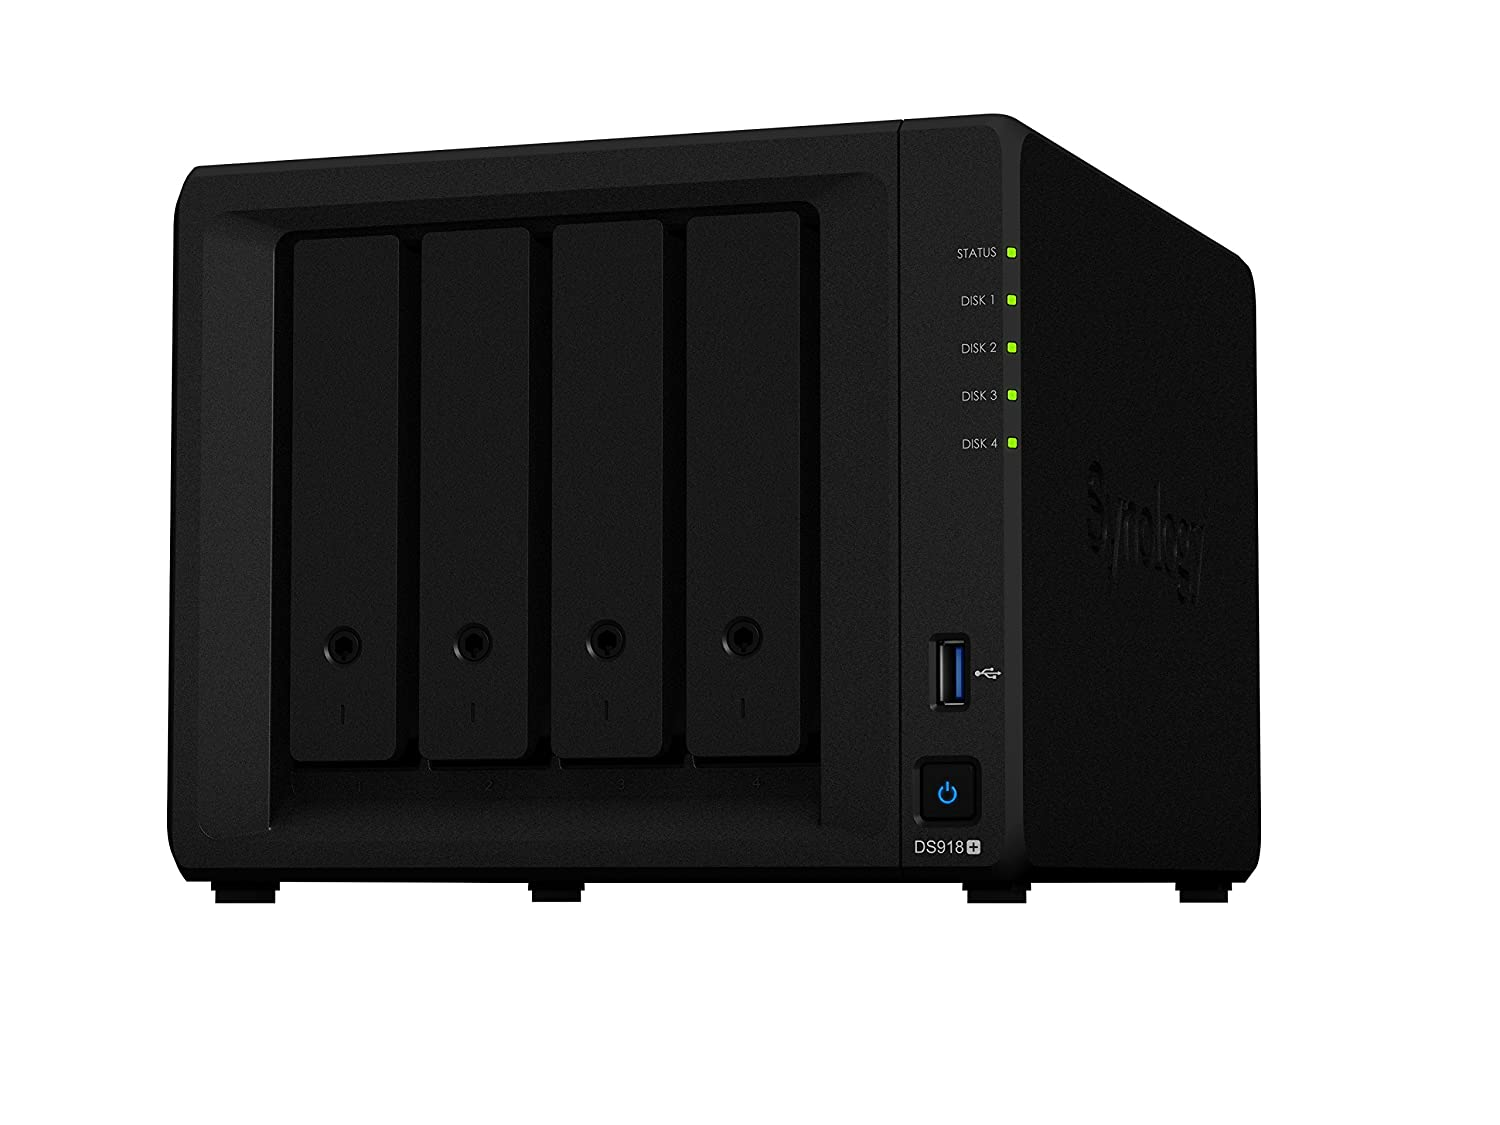 Synology DS918+ 40TB 4 Bay NAS Solució n | Instalado con 4 x 10TB Seagate IrownWolf Drives DS918+/40TB-IW